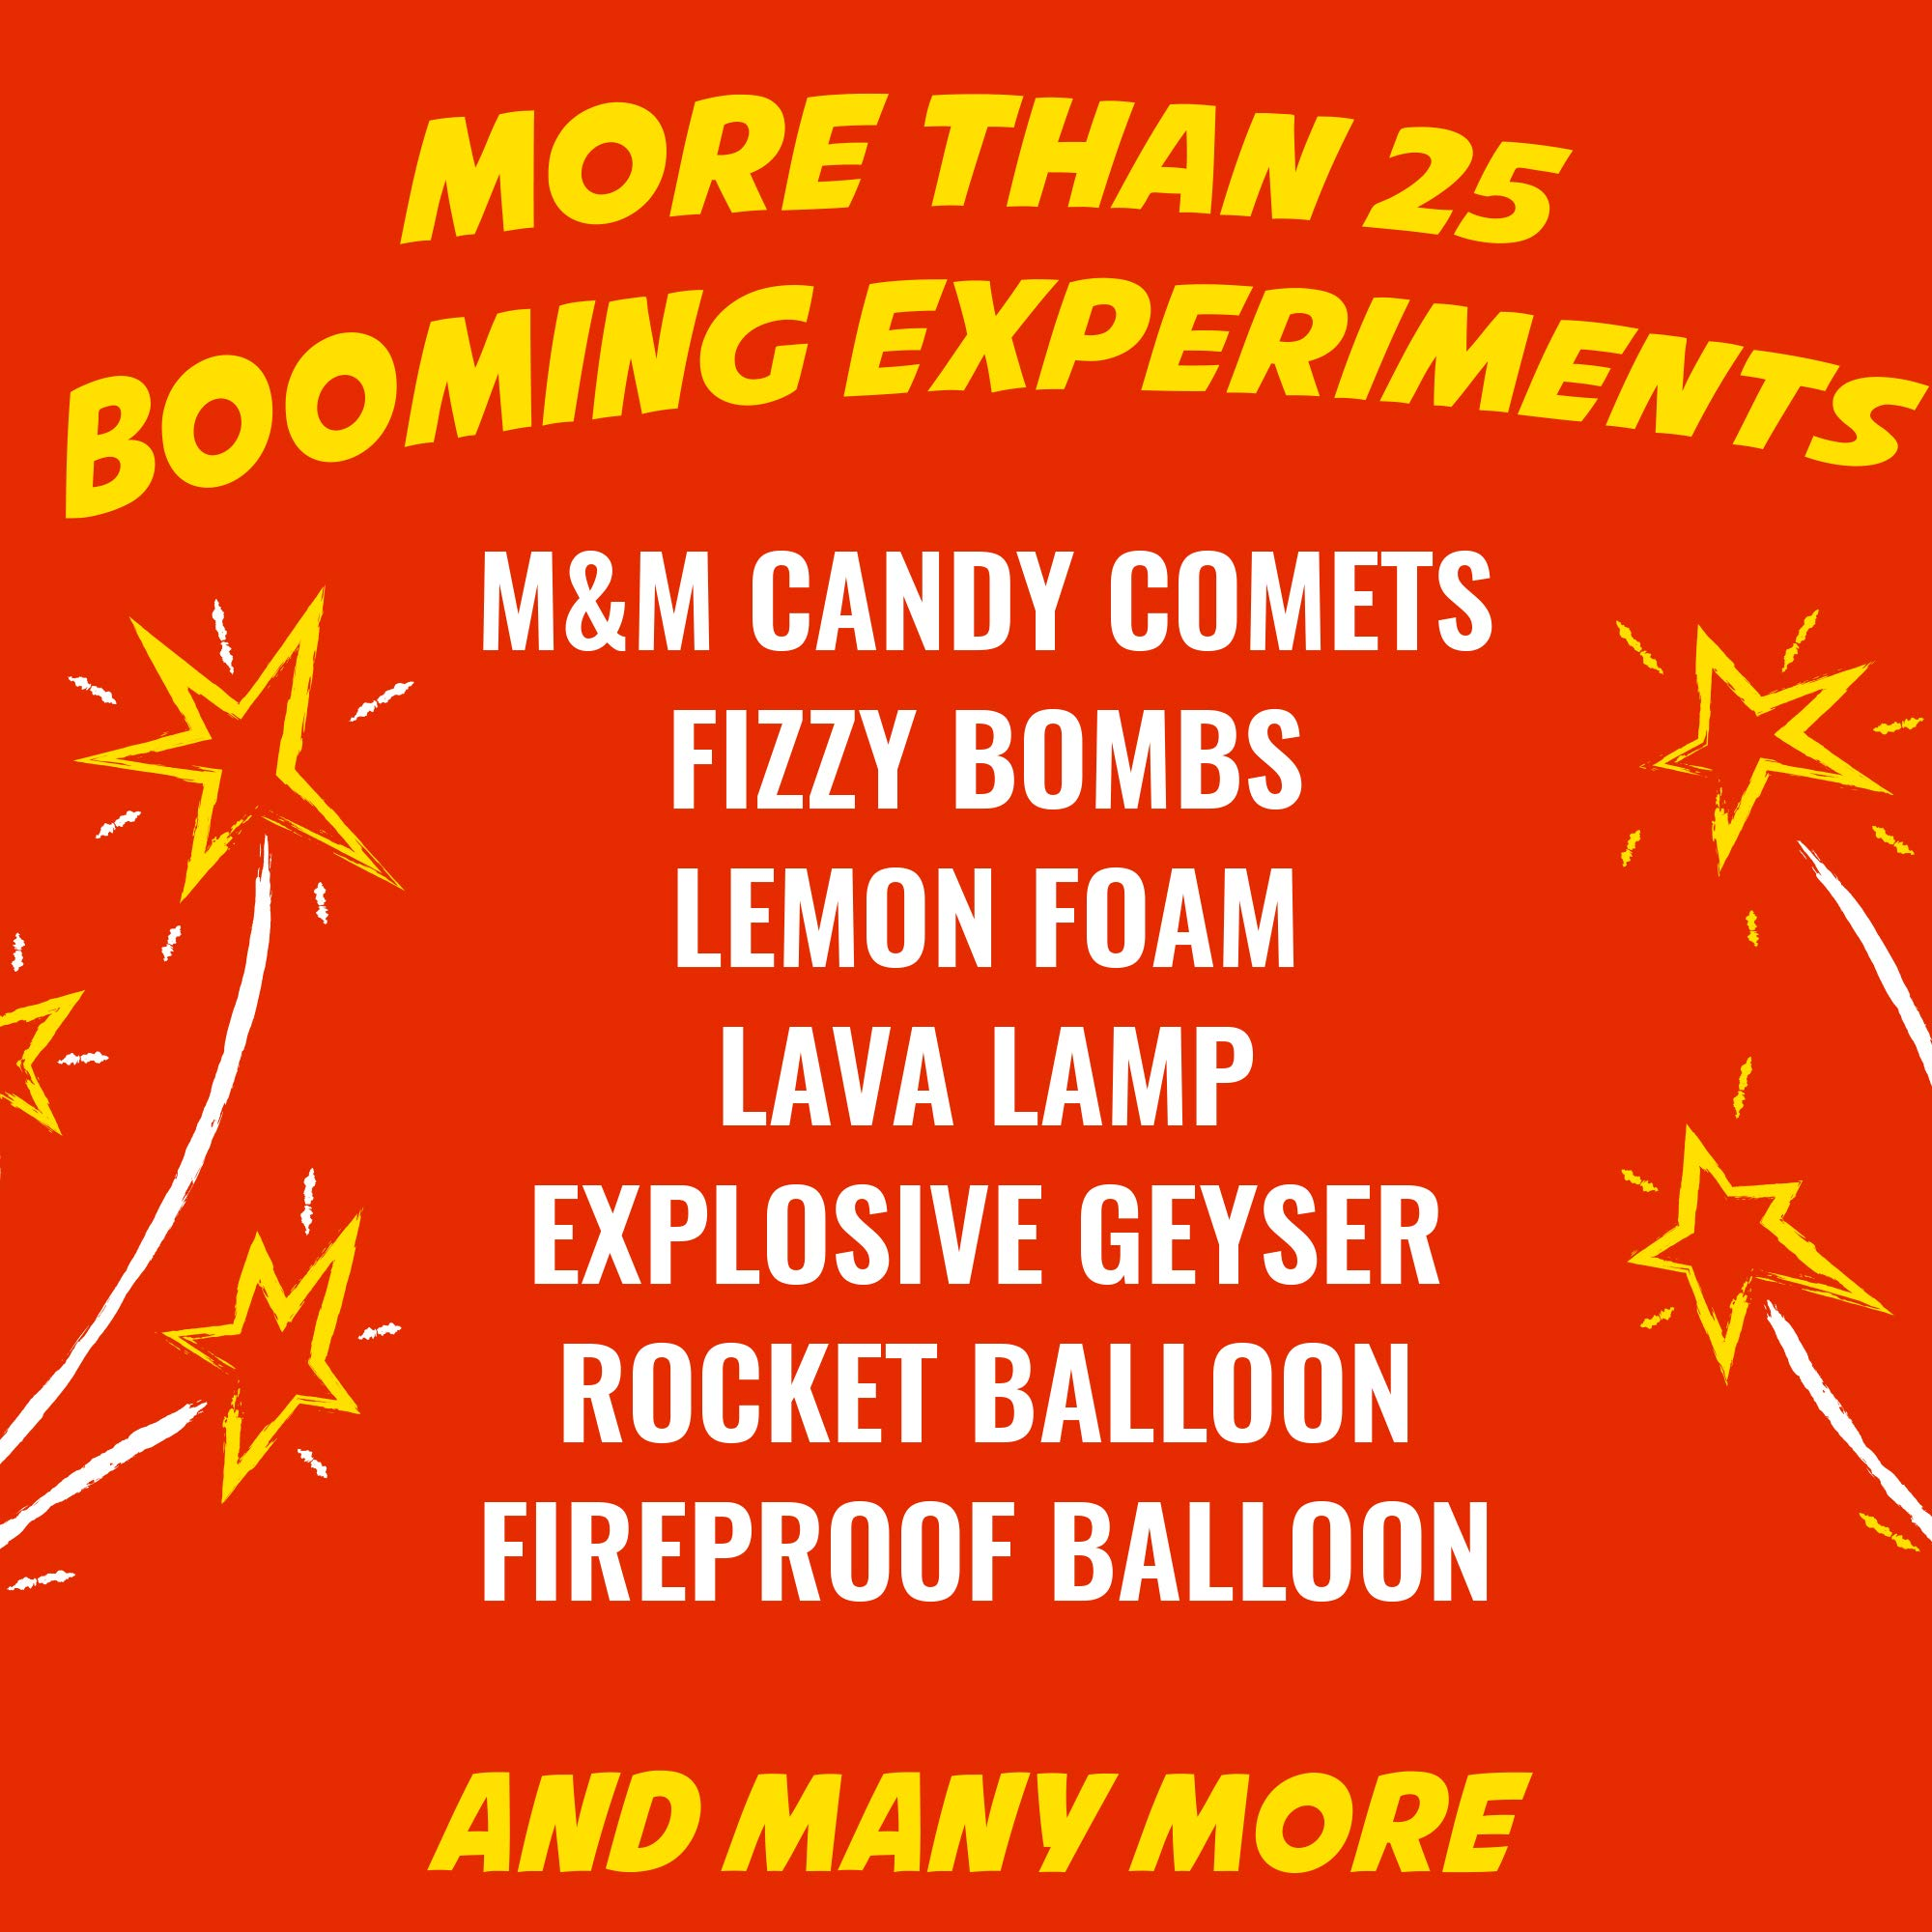 Playz Kaboom! Explosive Combustion Science Lab Kit - 25+ STEM Experiments - DIY Make Your Own Rockets, Helium Balloons, Fizzy Bombs, Color Explosions and More with Fun Chemical Reactions! by Playz (Image #2)